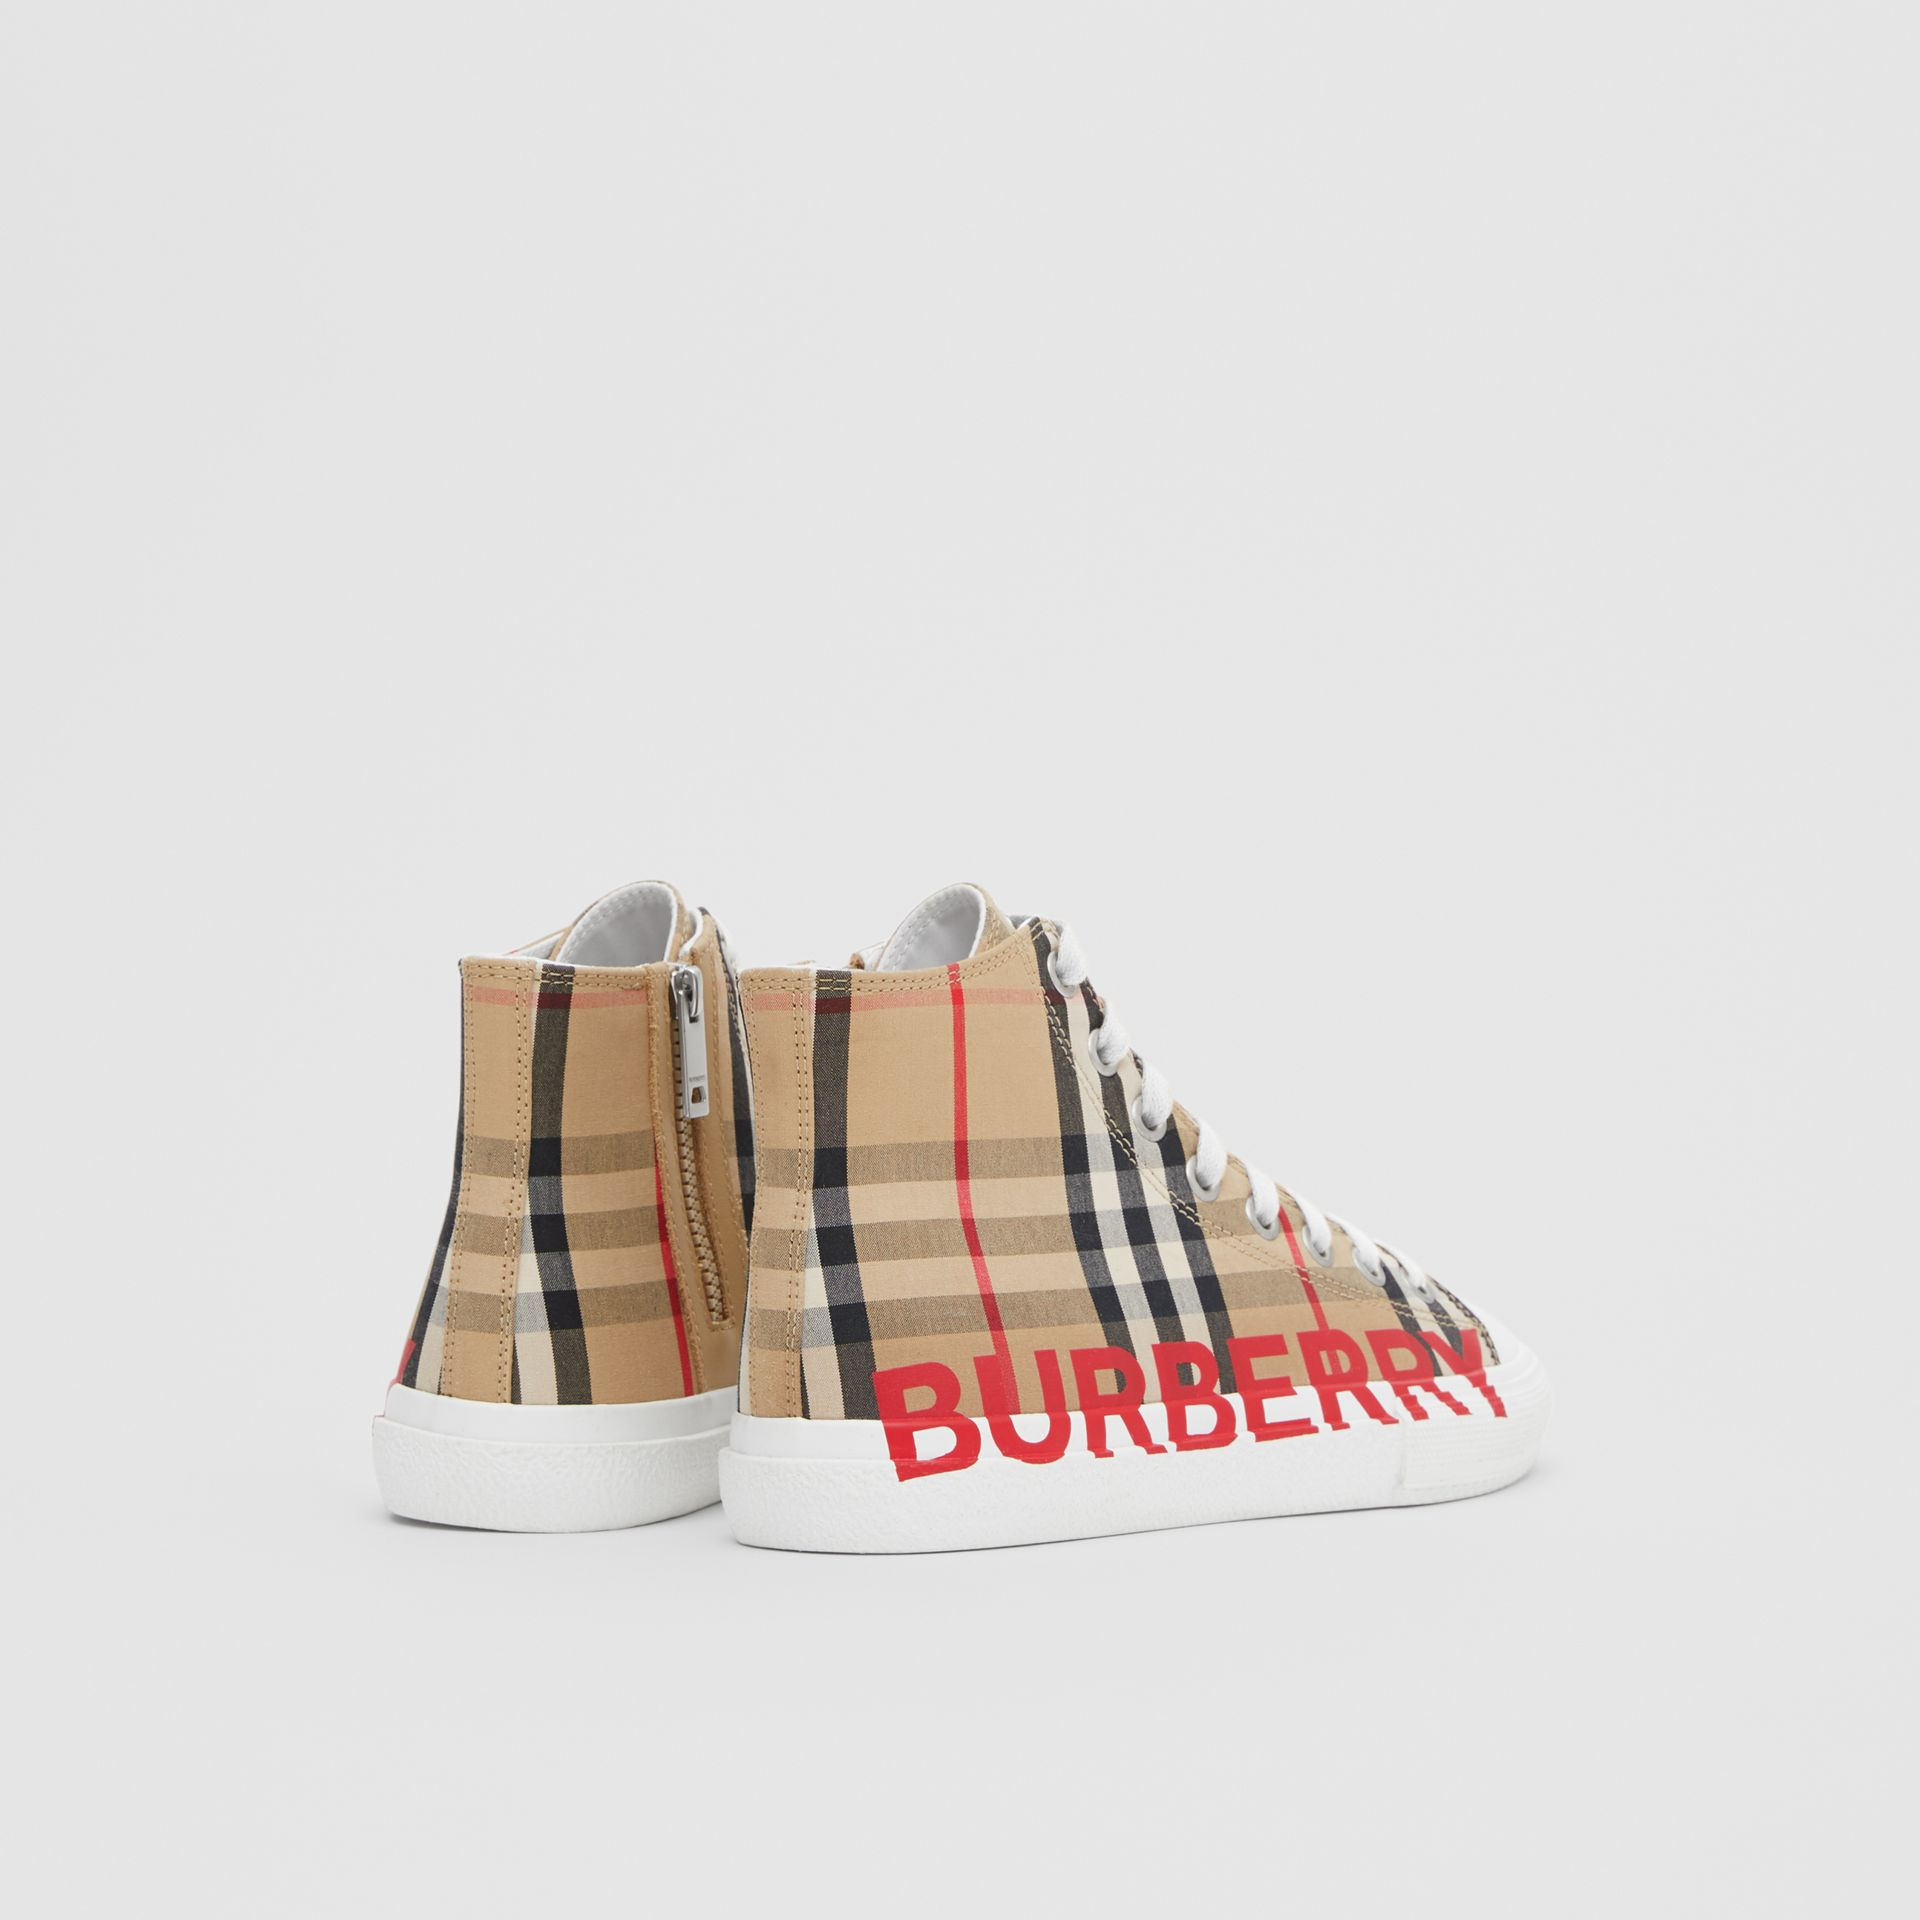 Logo Print Vintage Check High-top Sneakers in Archive Beige - Children | Burberry - gallery image 2